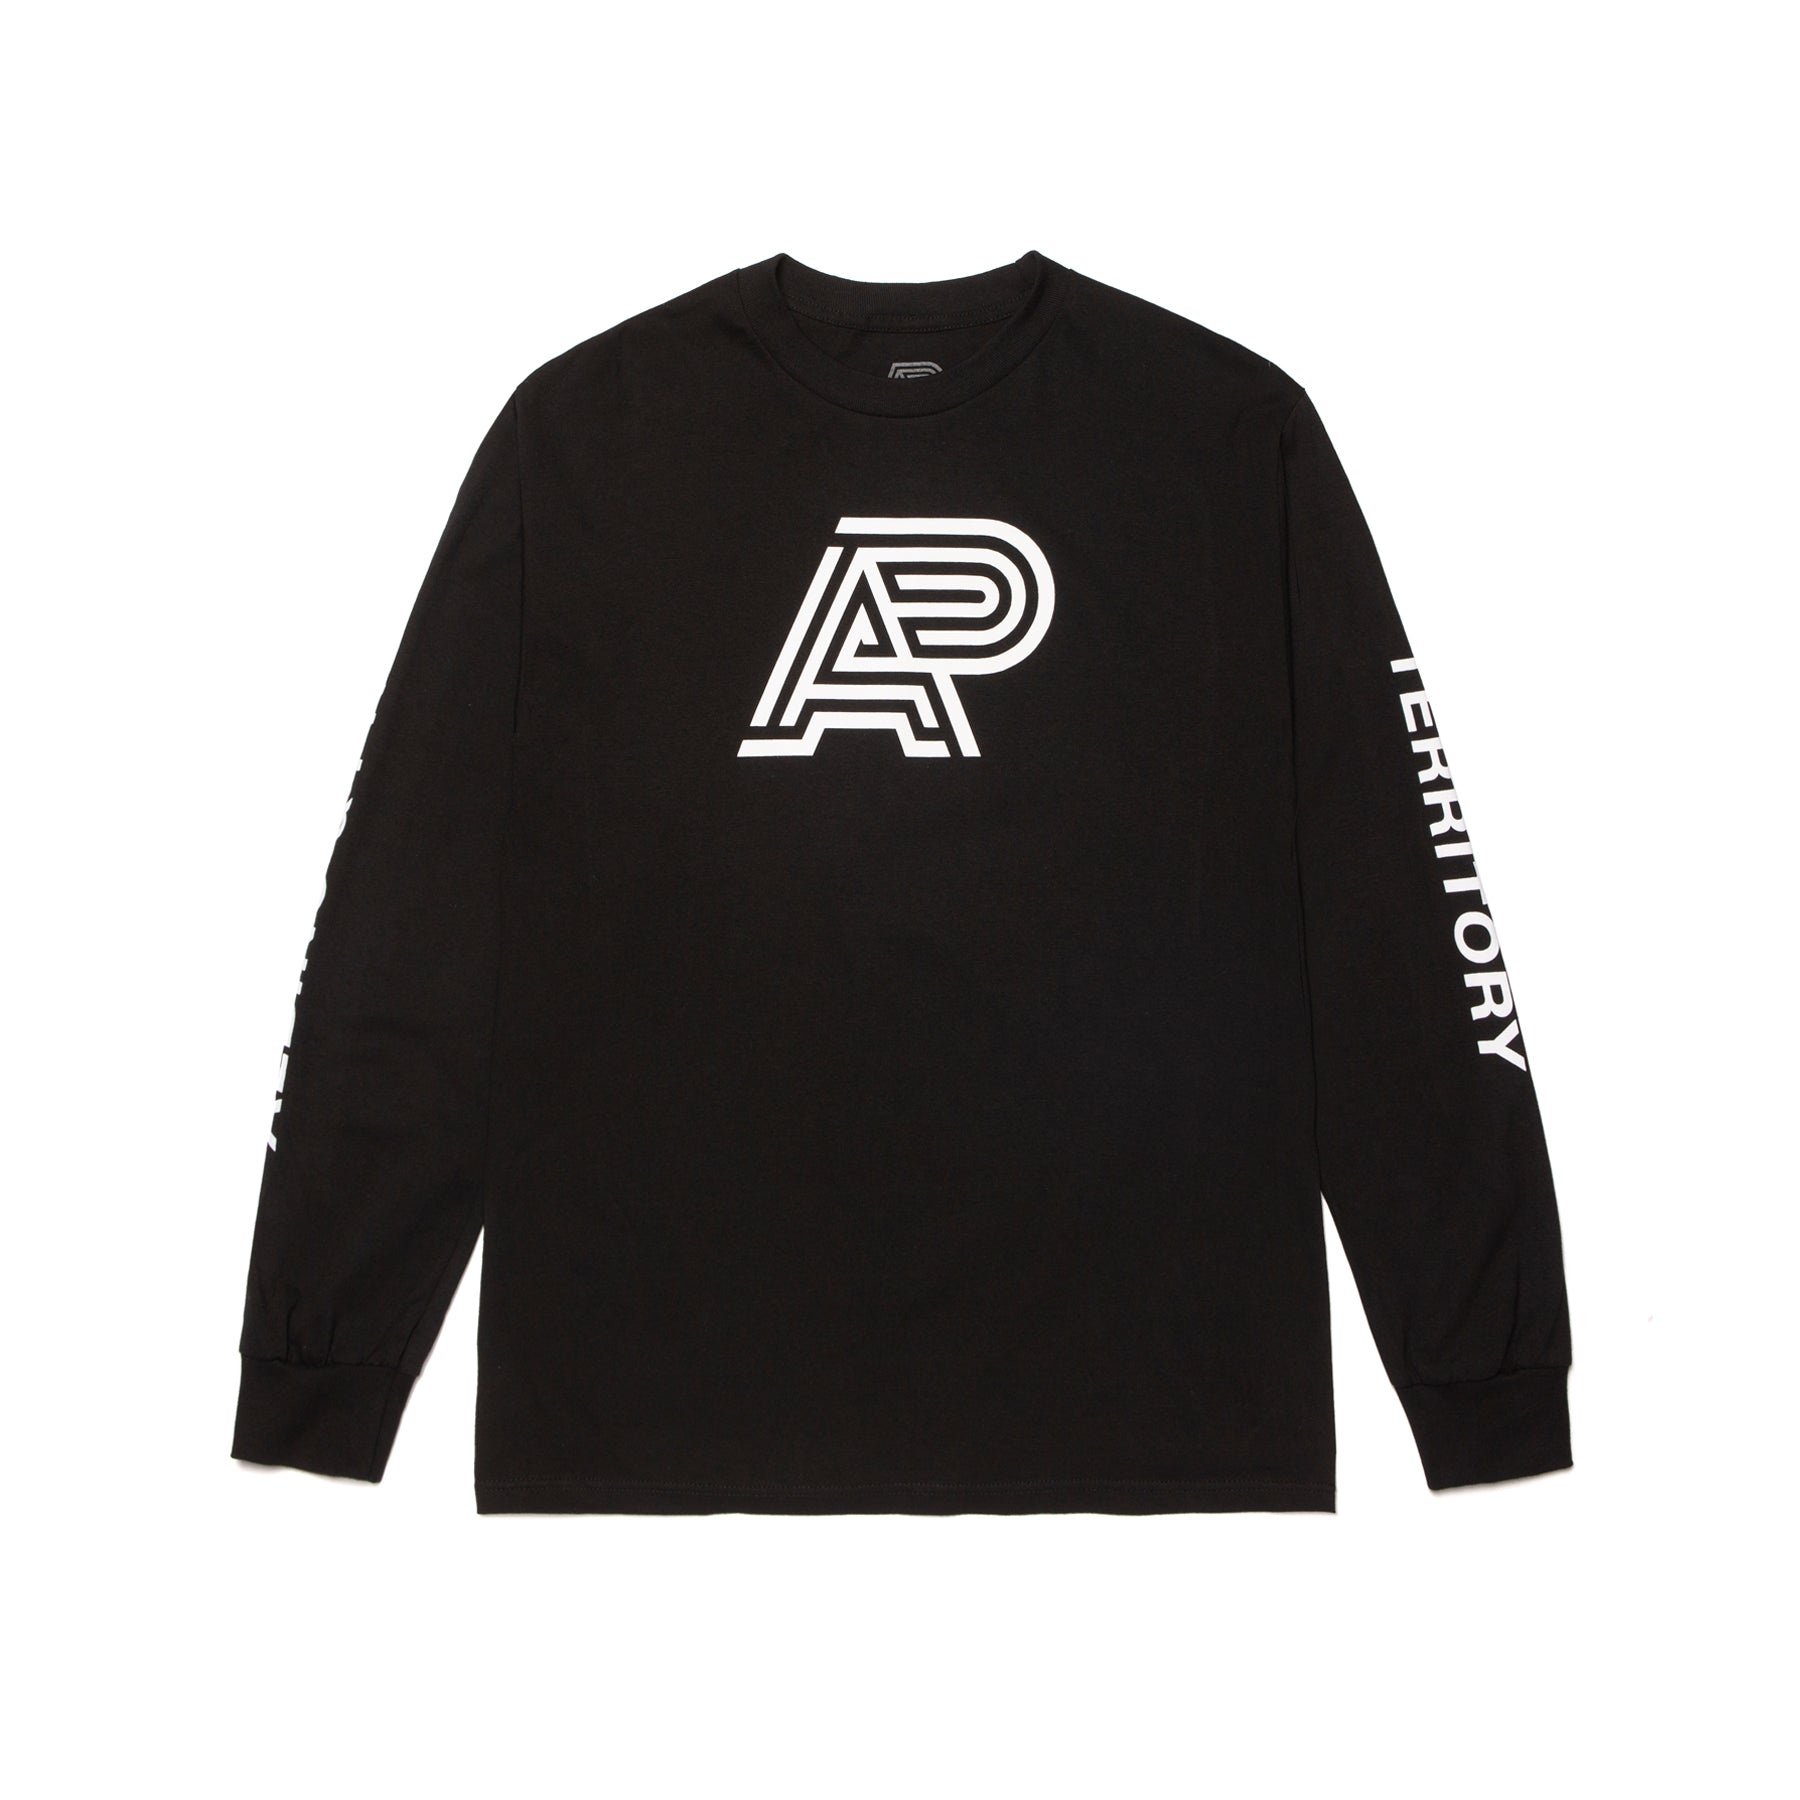 W-AP LS TEE BLACK (FULFILLMENT)